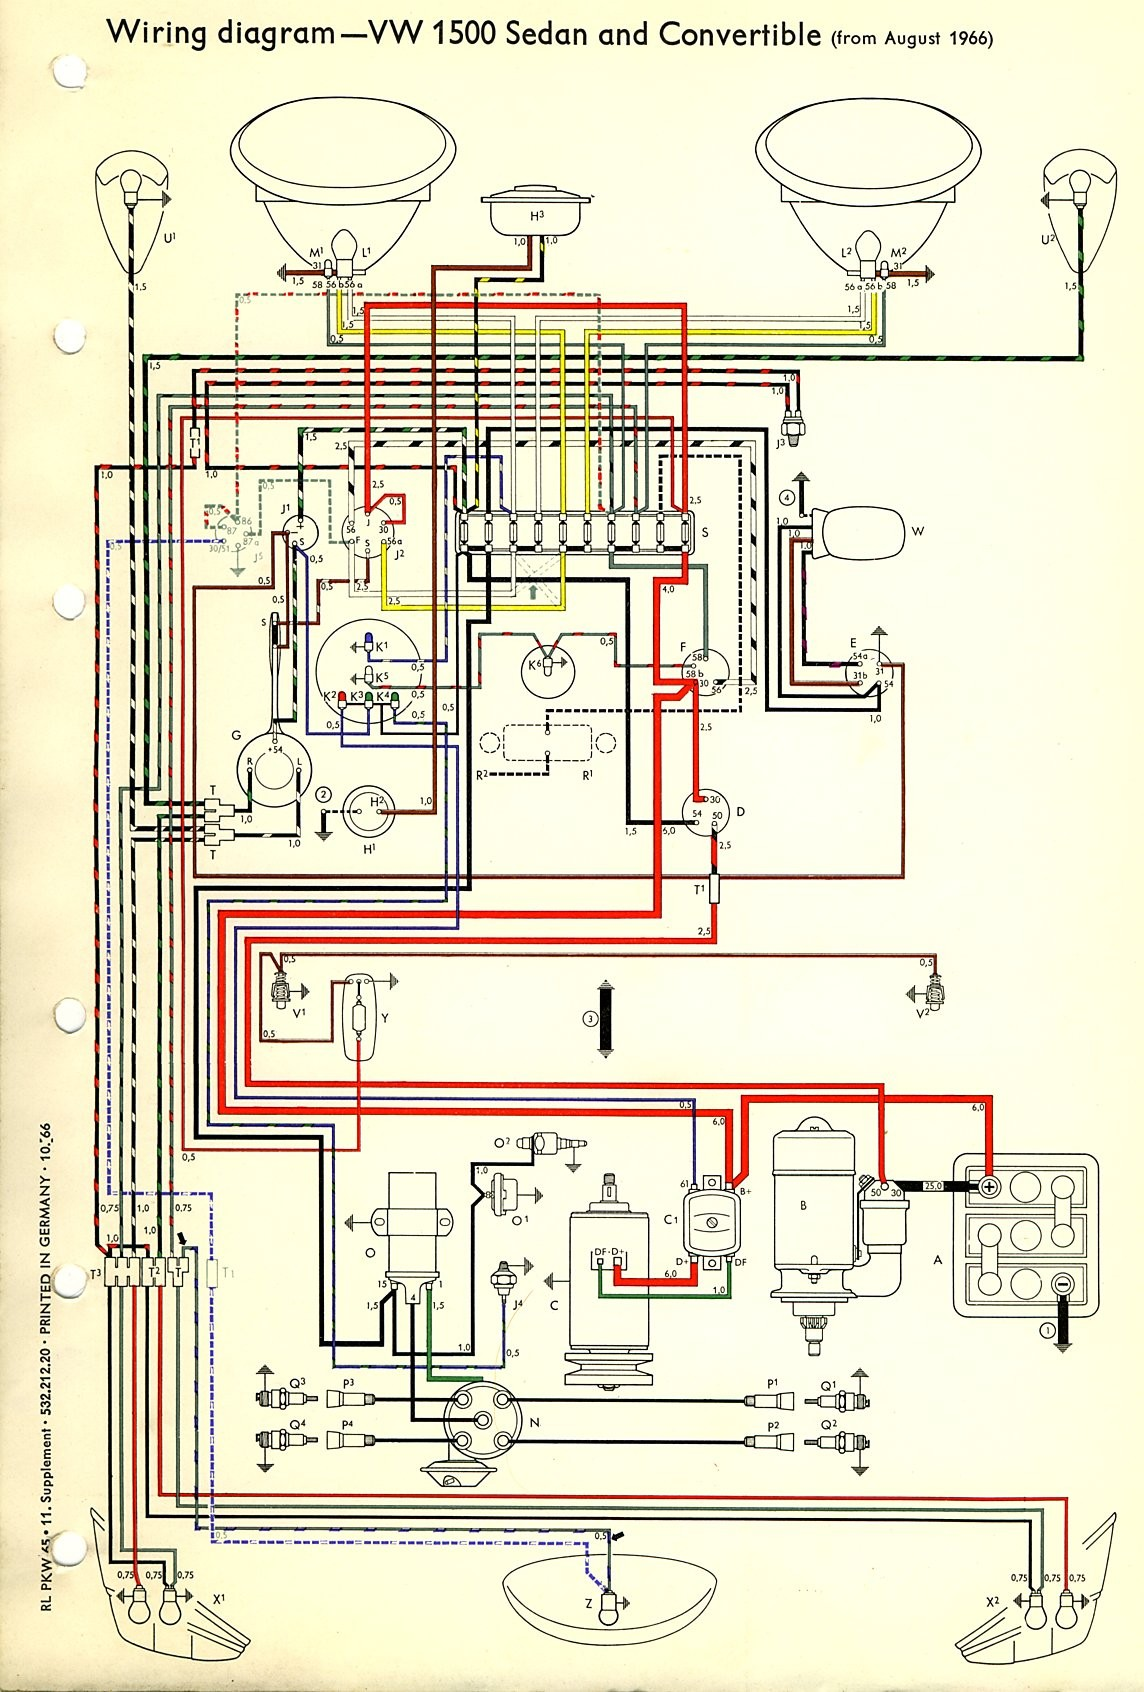 vw wiring diagram for 1961 data wiring diagrams u2022 rh 66 42 64 5 1973 VW  Super Beetle Wiring Diagram 1969 VW Beetle Wiring Diagram